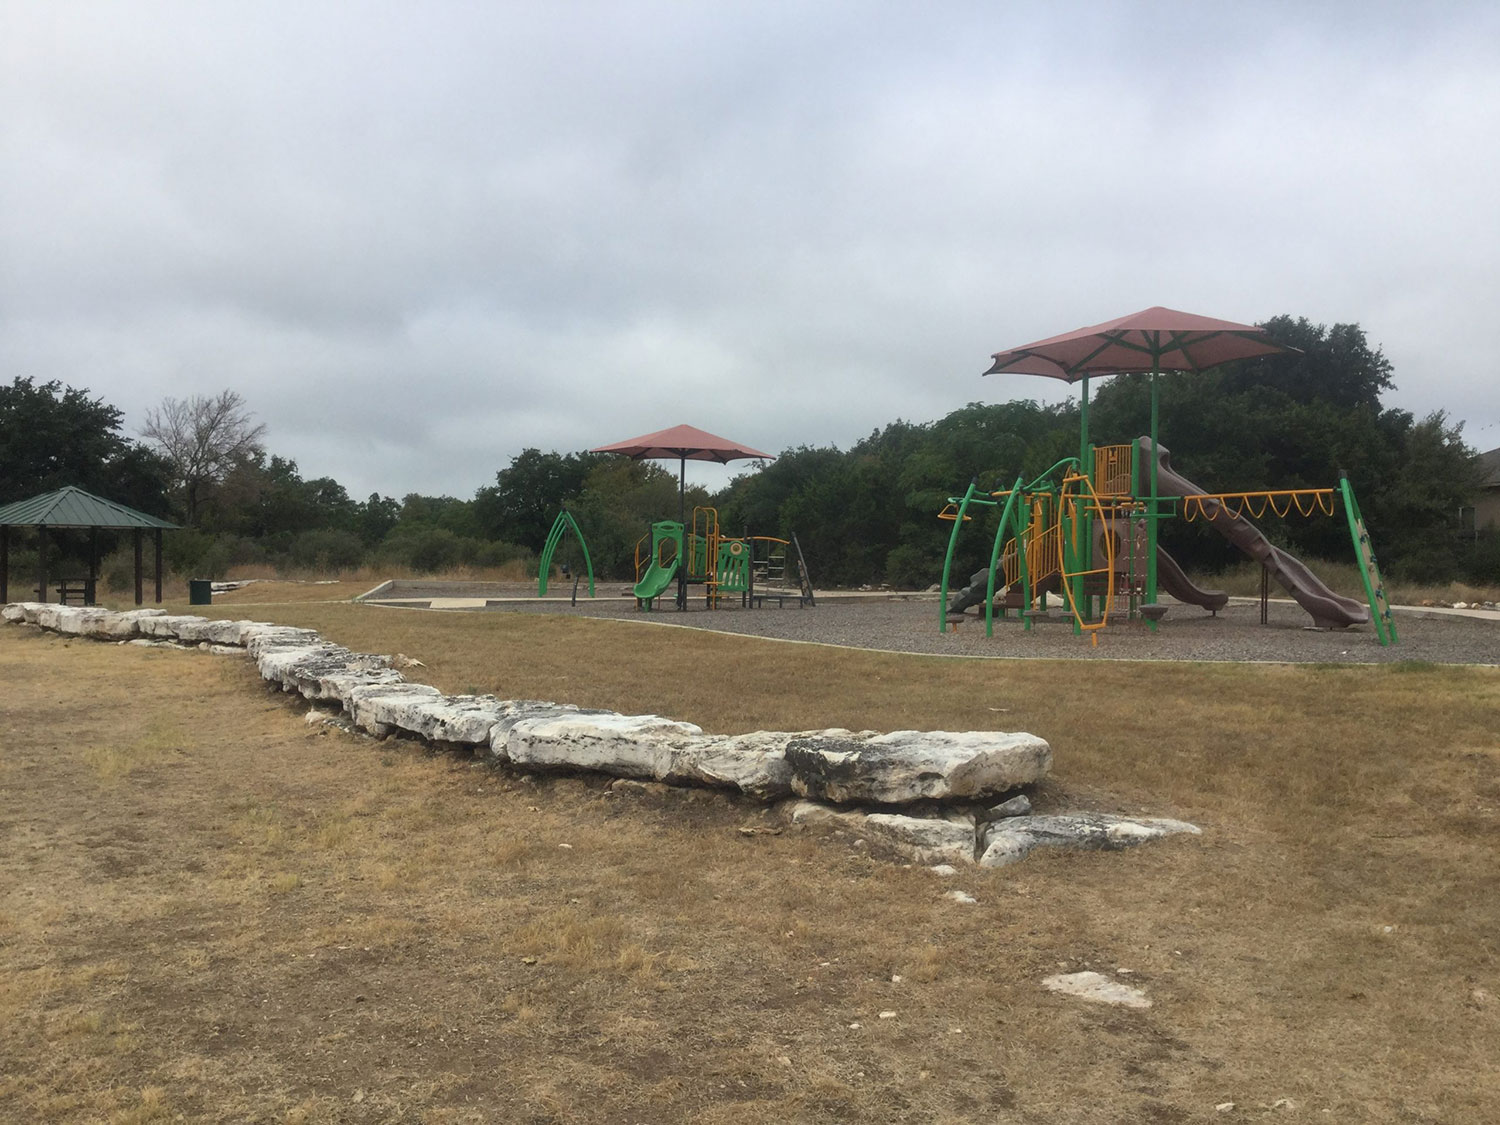 Playscape at Emerald Springs Park in Georgetown, TX